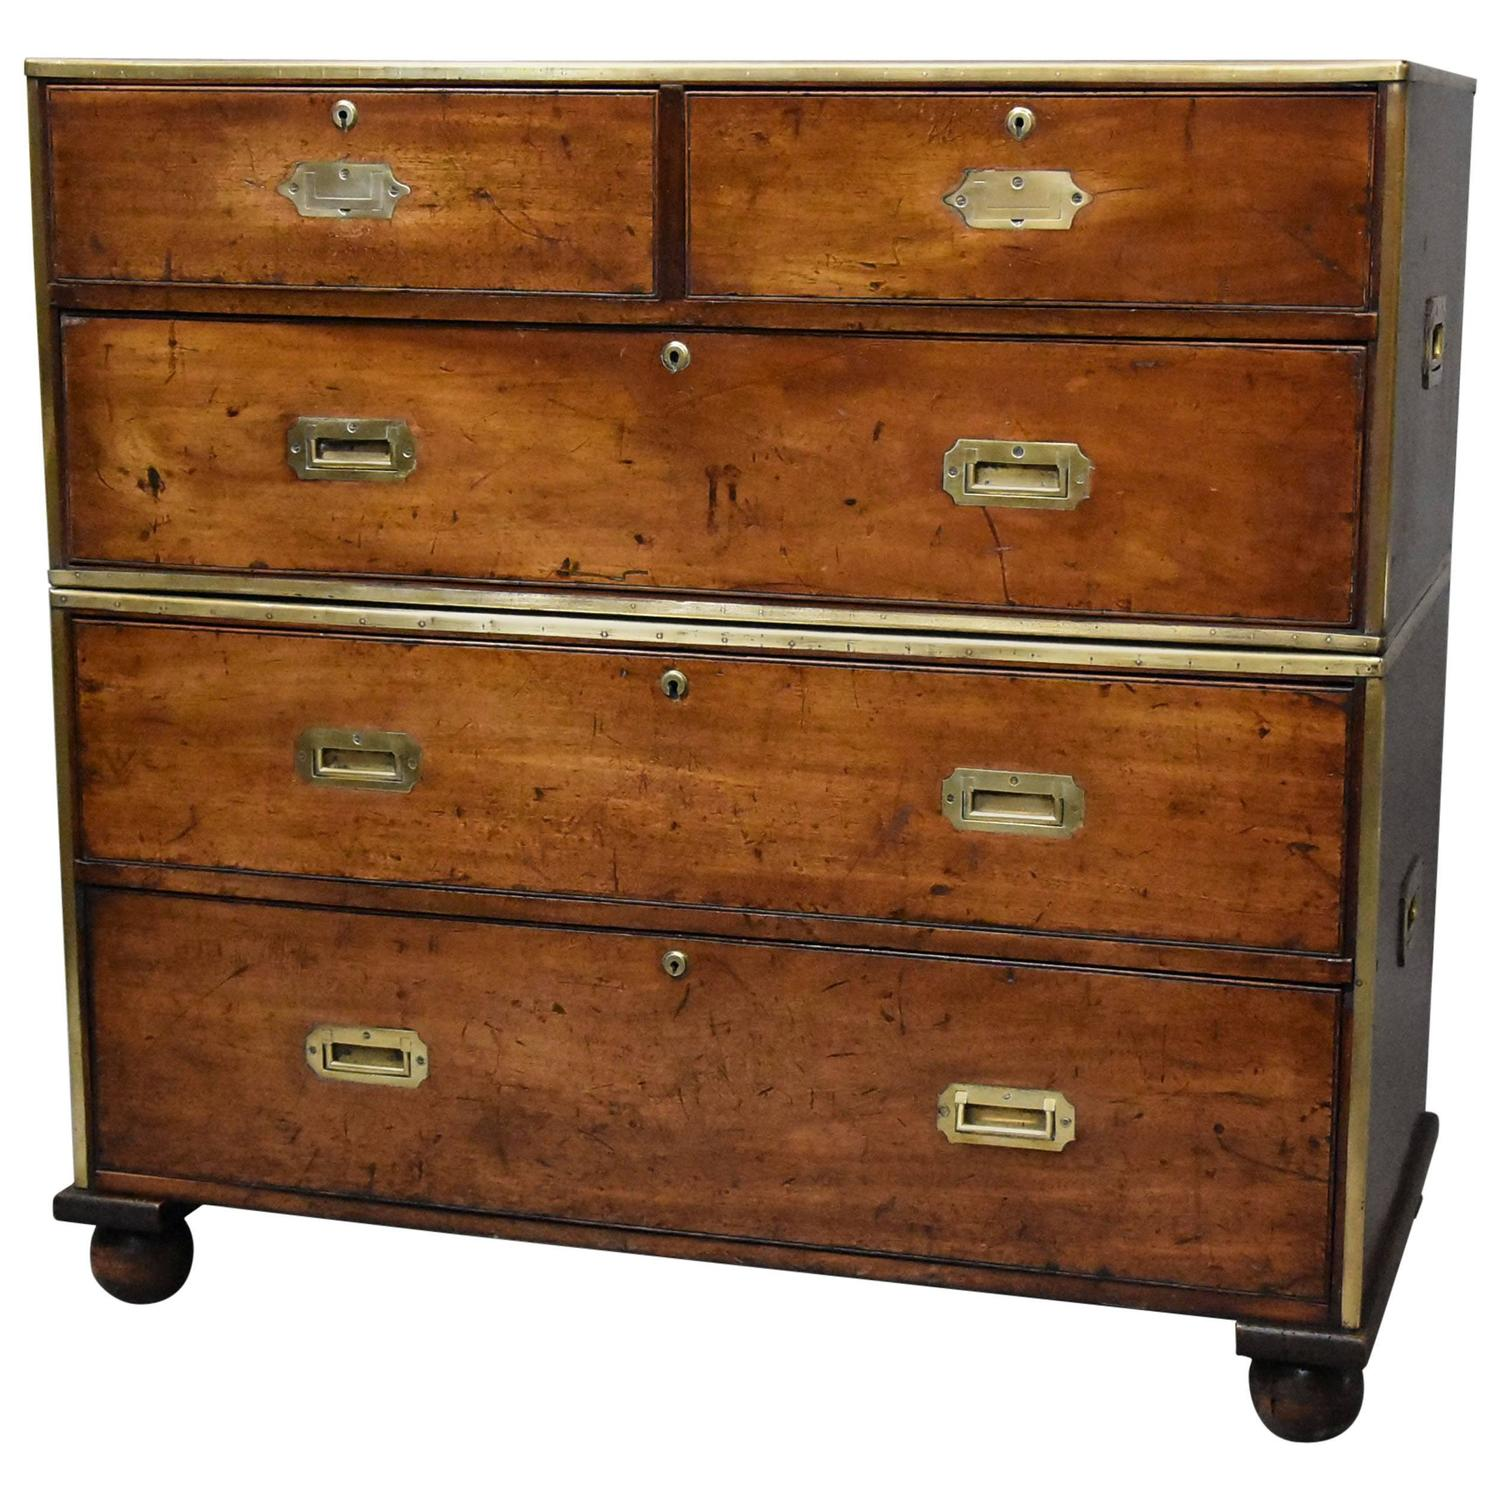 Flächenvorhang Raumteiler Ikea ~ Lovely Biedermeier Chest Of Drawers Germany 1820s30s At 1stdibs with